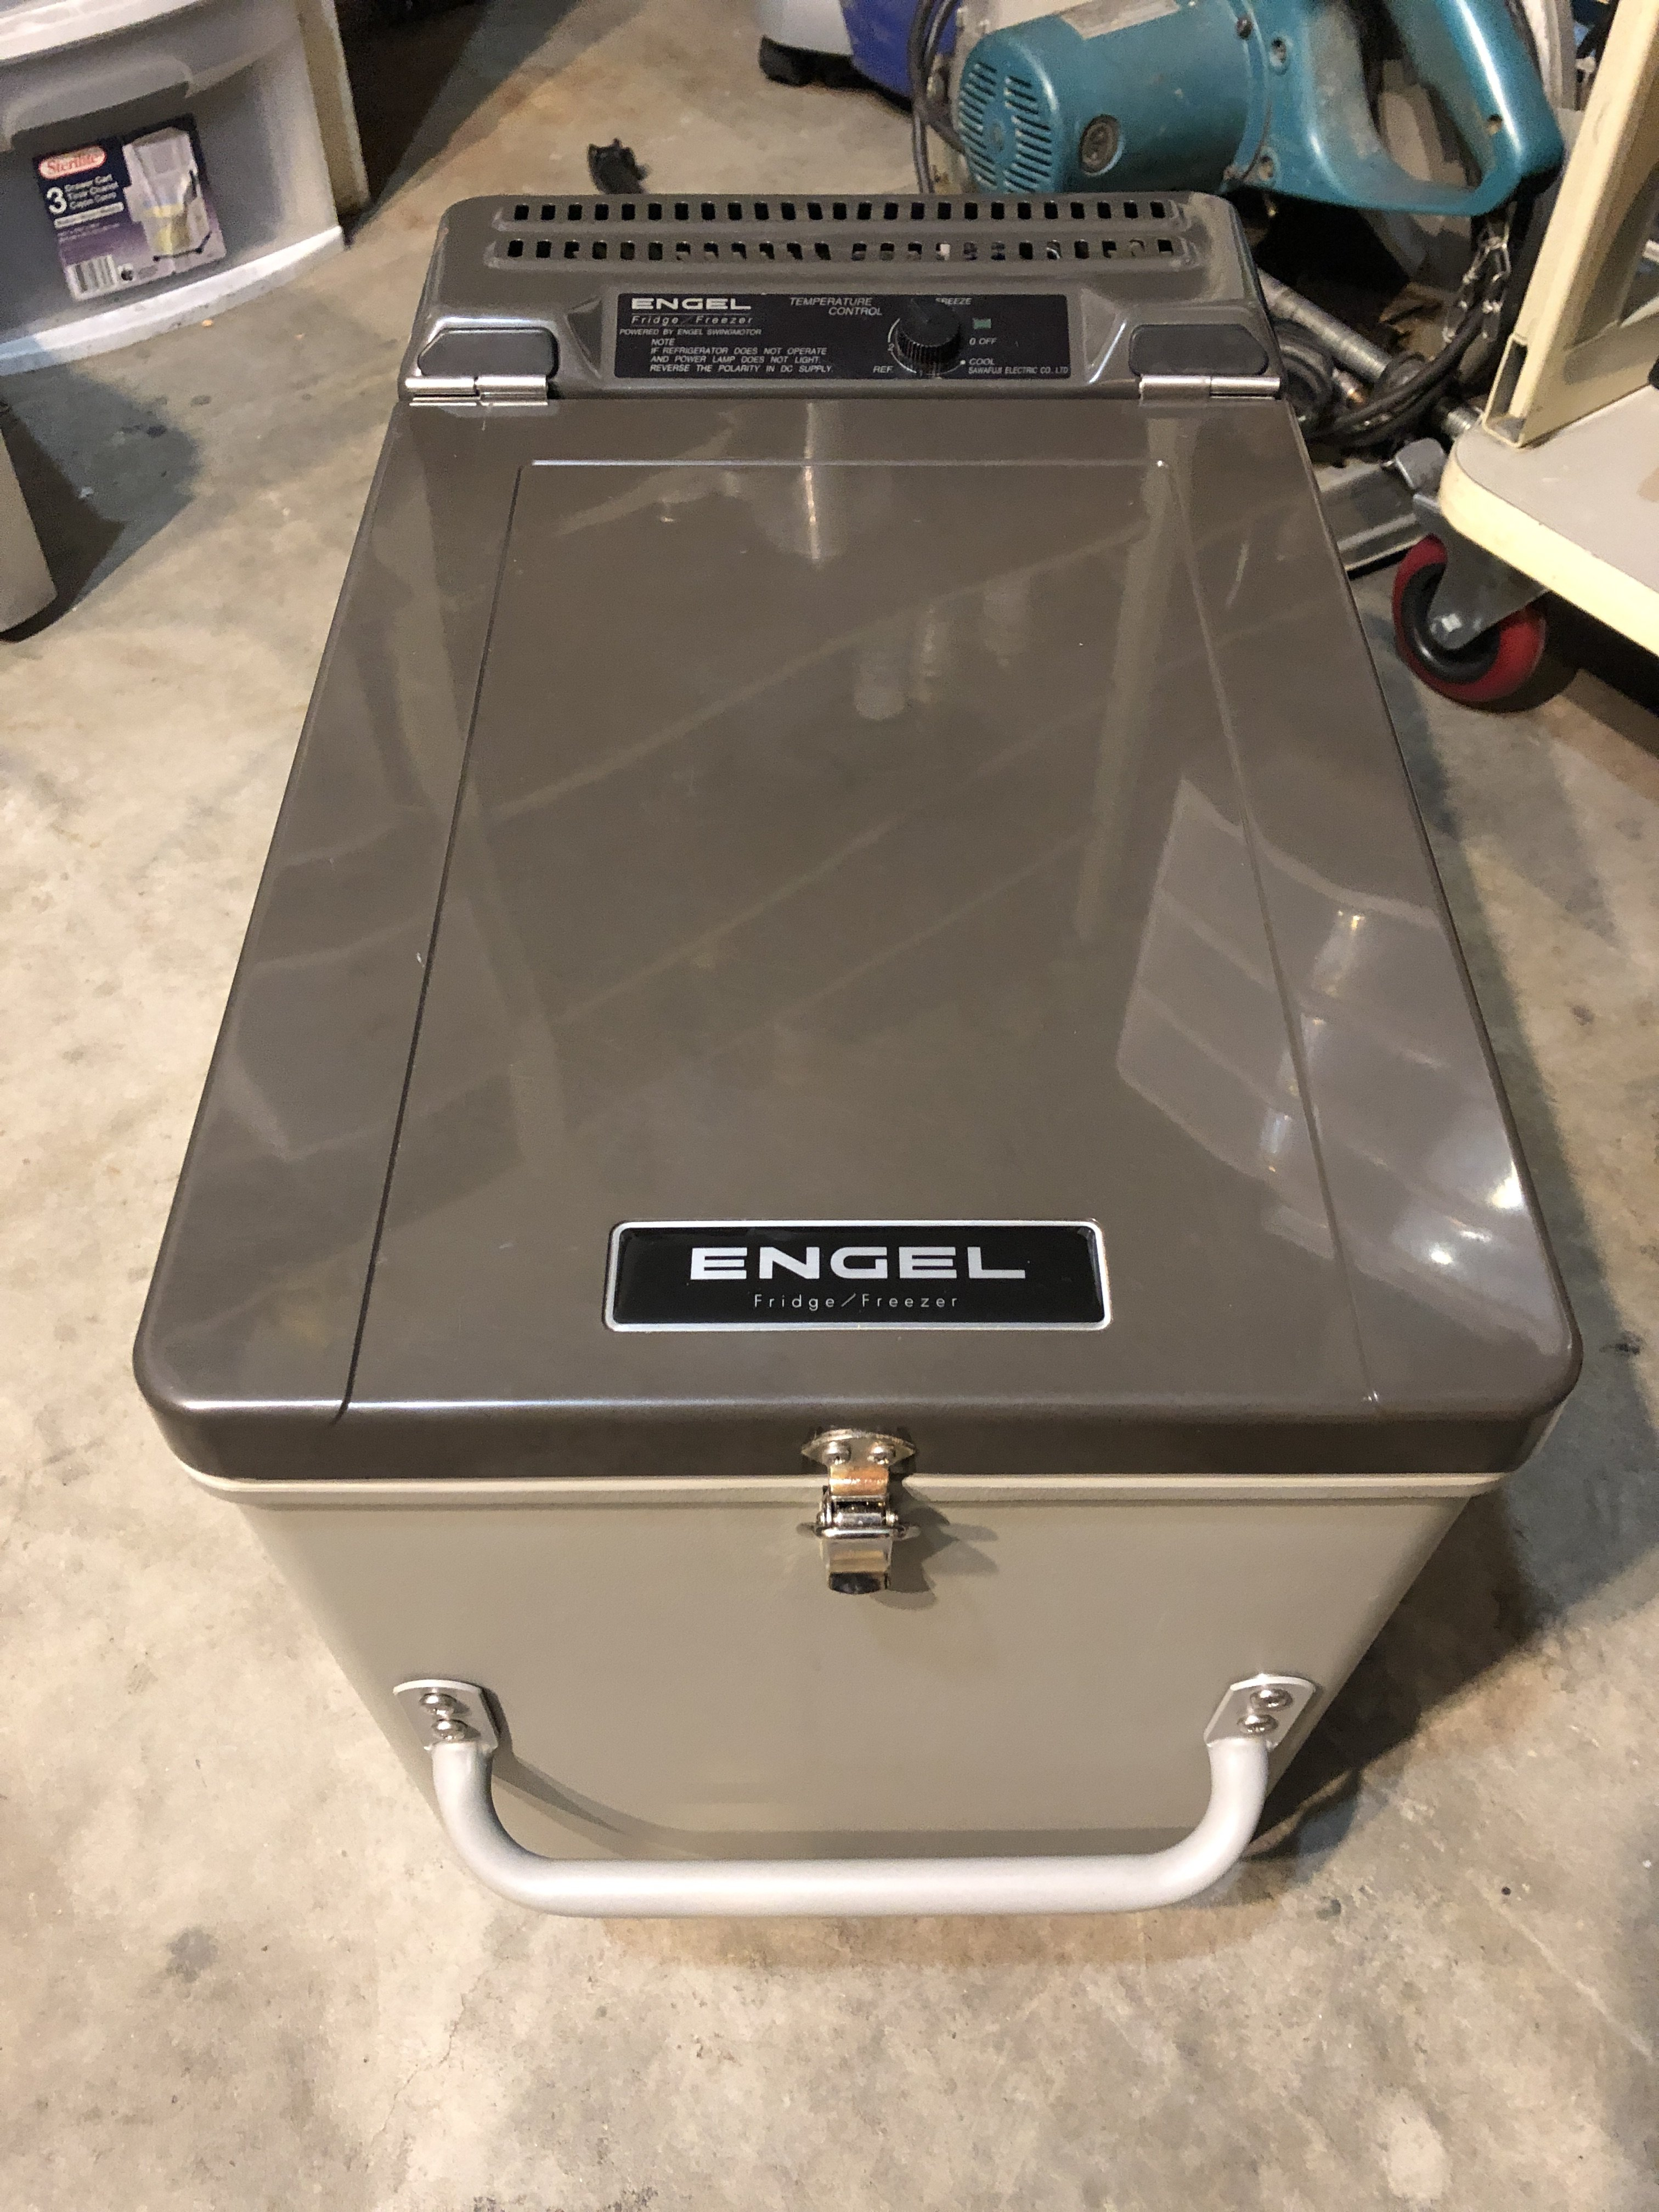 SOLD: Engel MT17 fridge freezer | Expedition Portal